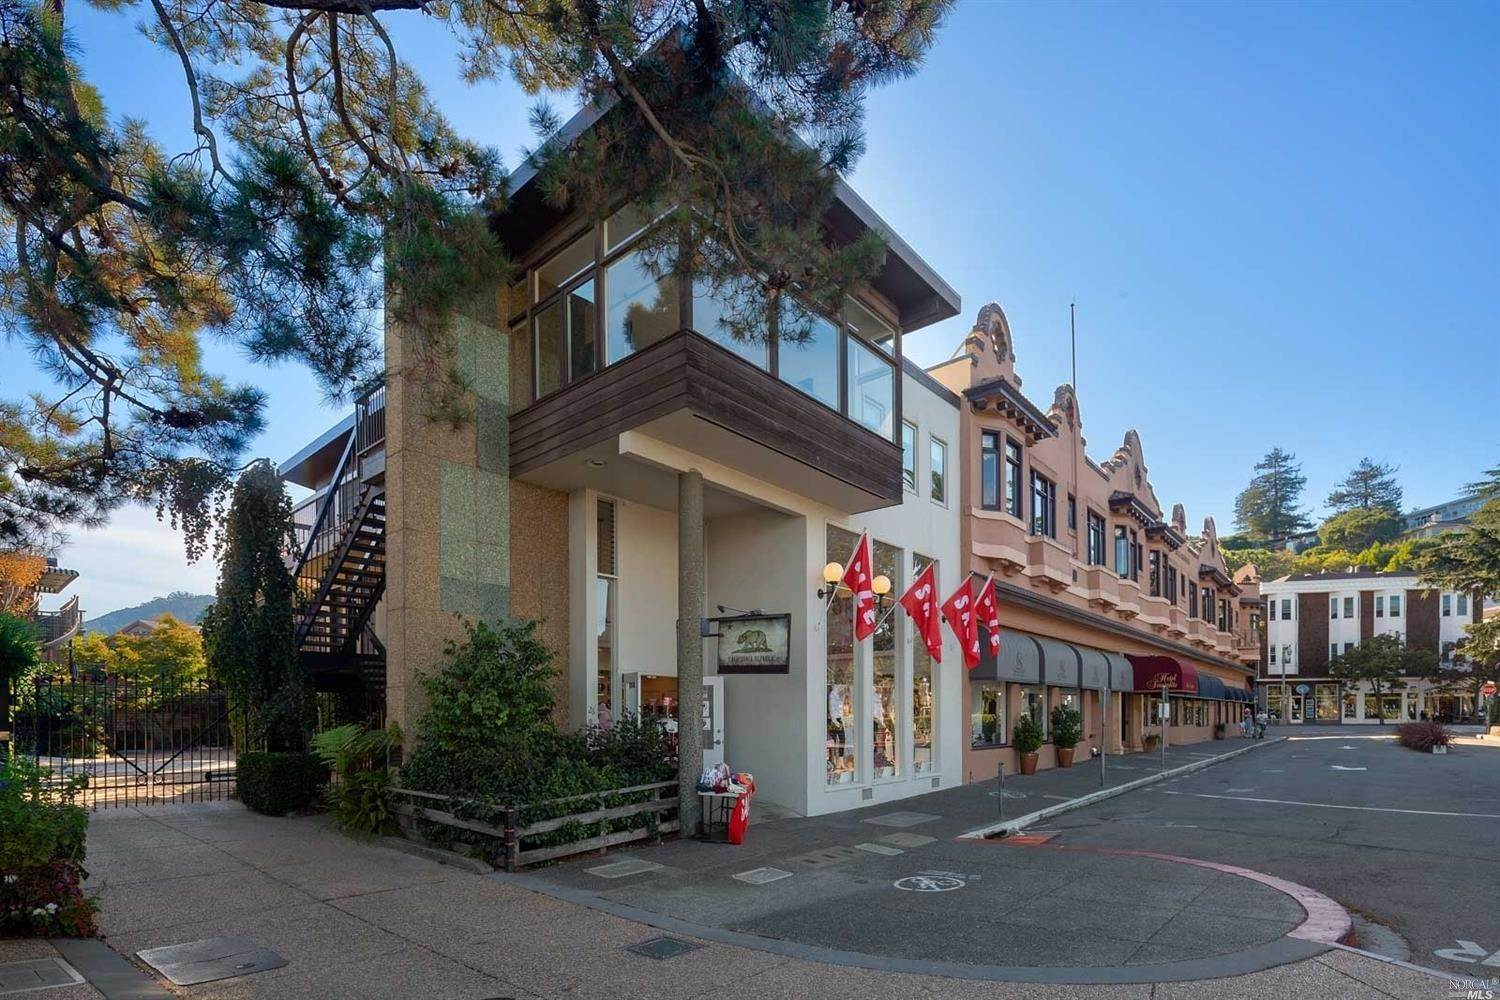 Property for Sale at 26 El Portal , Sausalito Sausalito, California 94965 United States